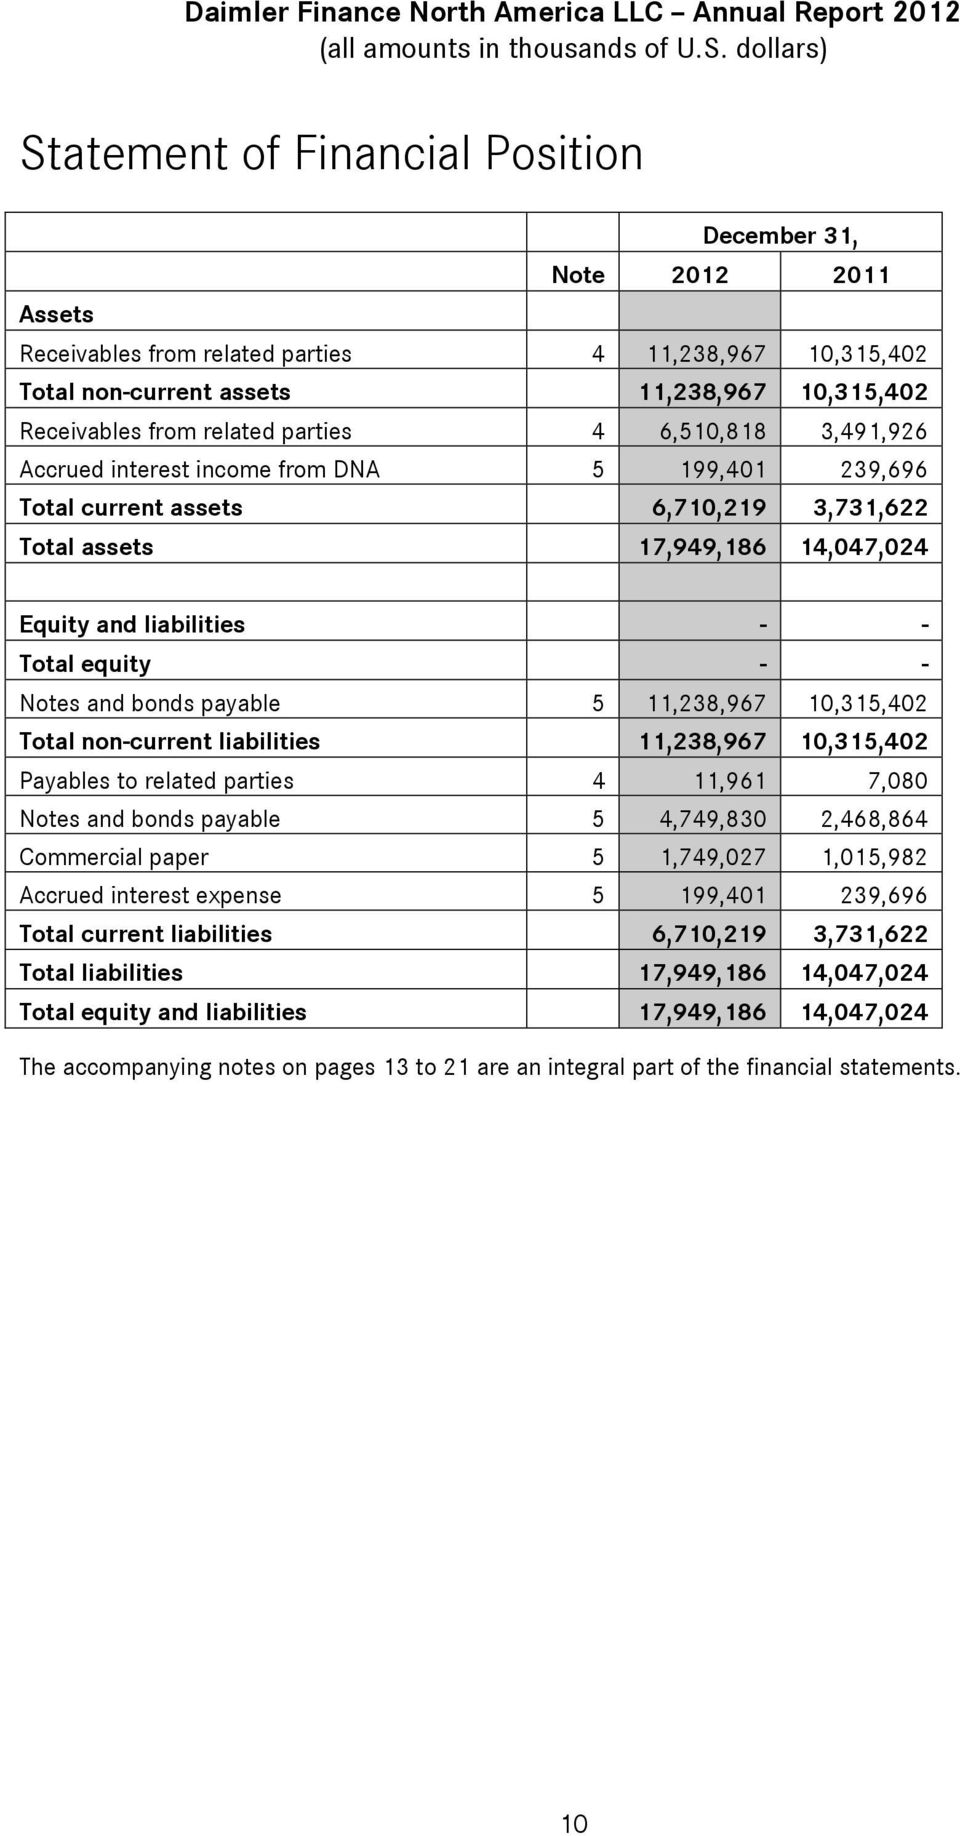 - Notes and bonds payable 5 11,238,967 10,315,402 Total non-current liabilities 11,238,967 10,315,402 Payables to related parties 4 11,961 7,080 Notes and bonds payable 5 4,749,830 2,468,864